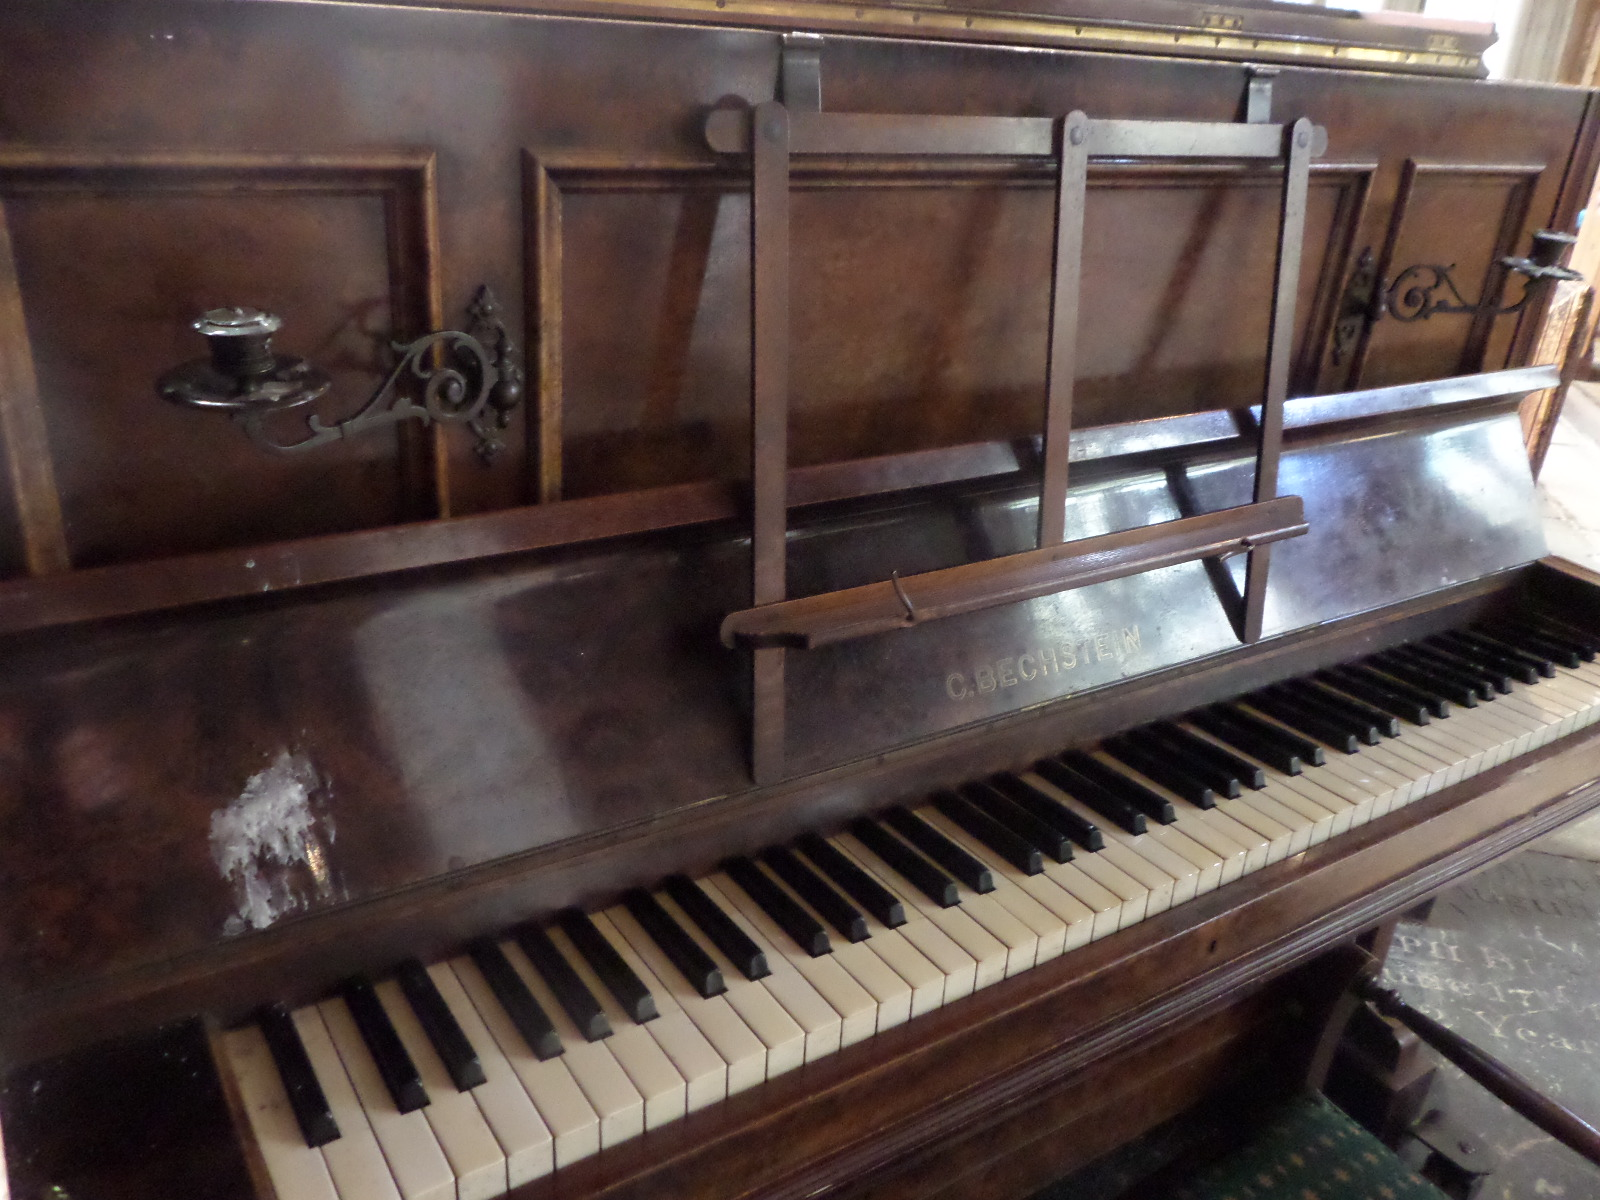 The Old Bechstein Piano